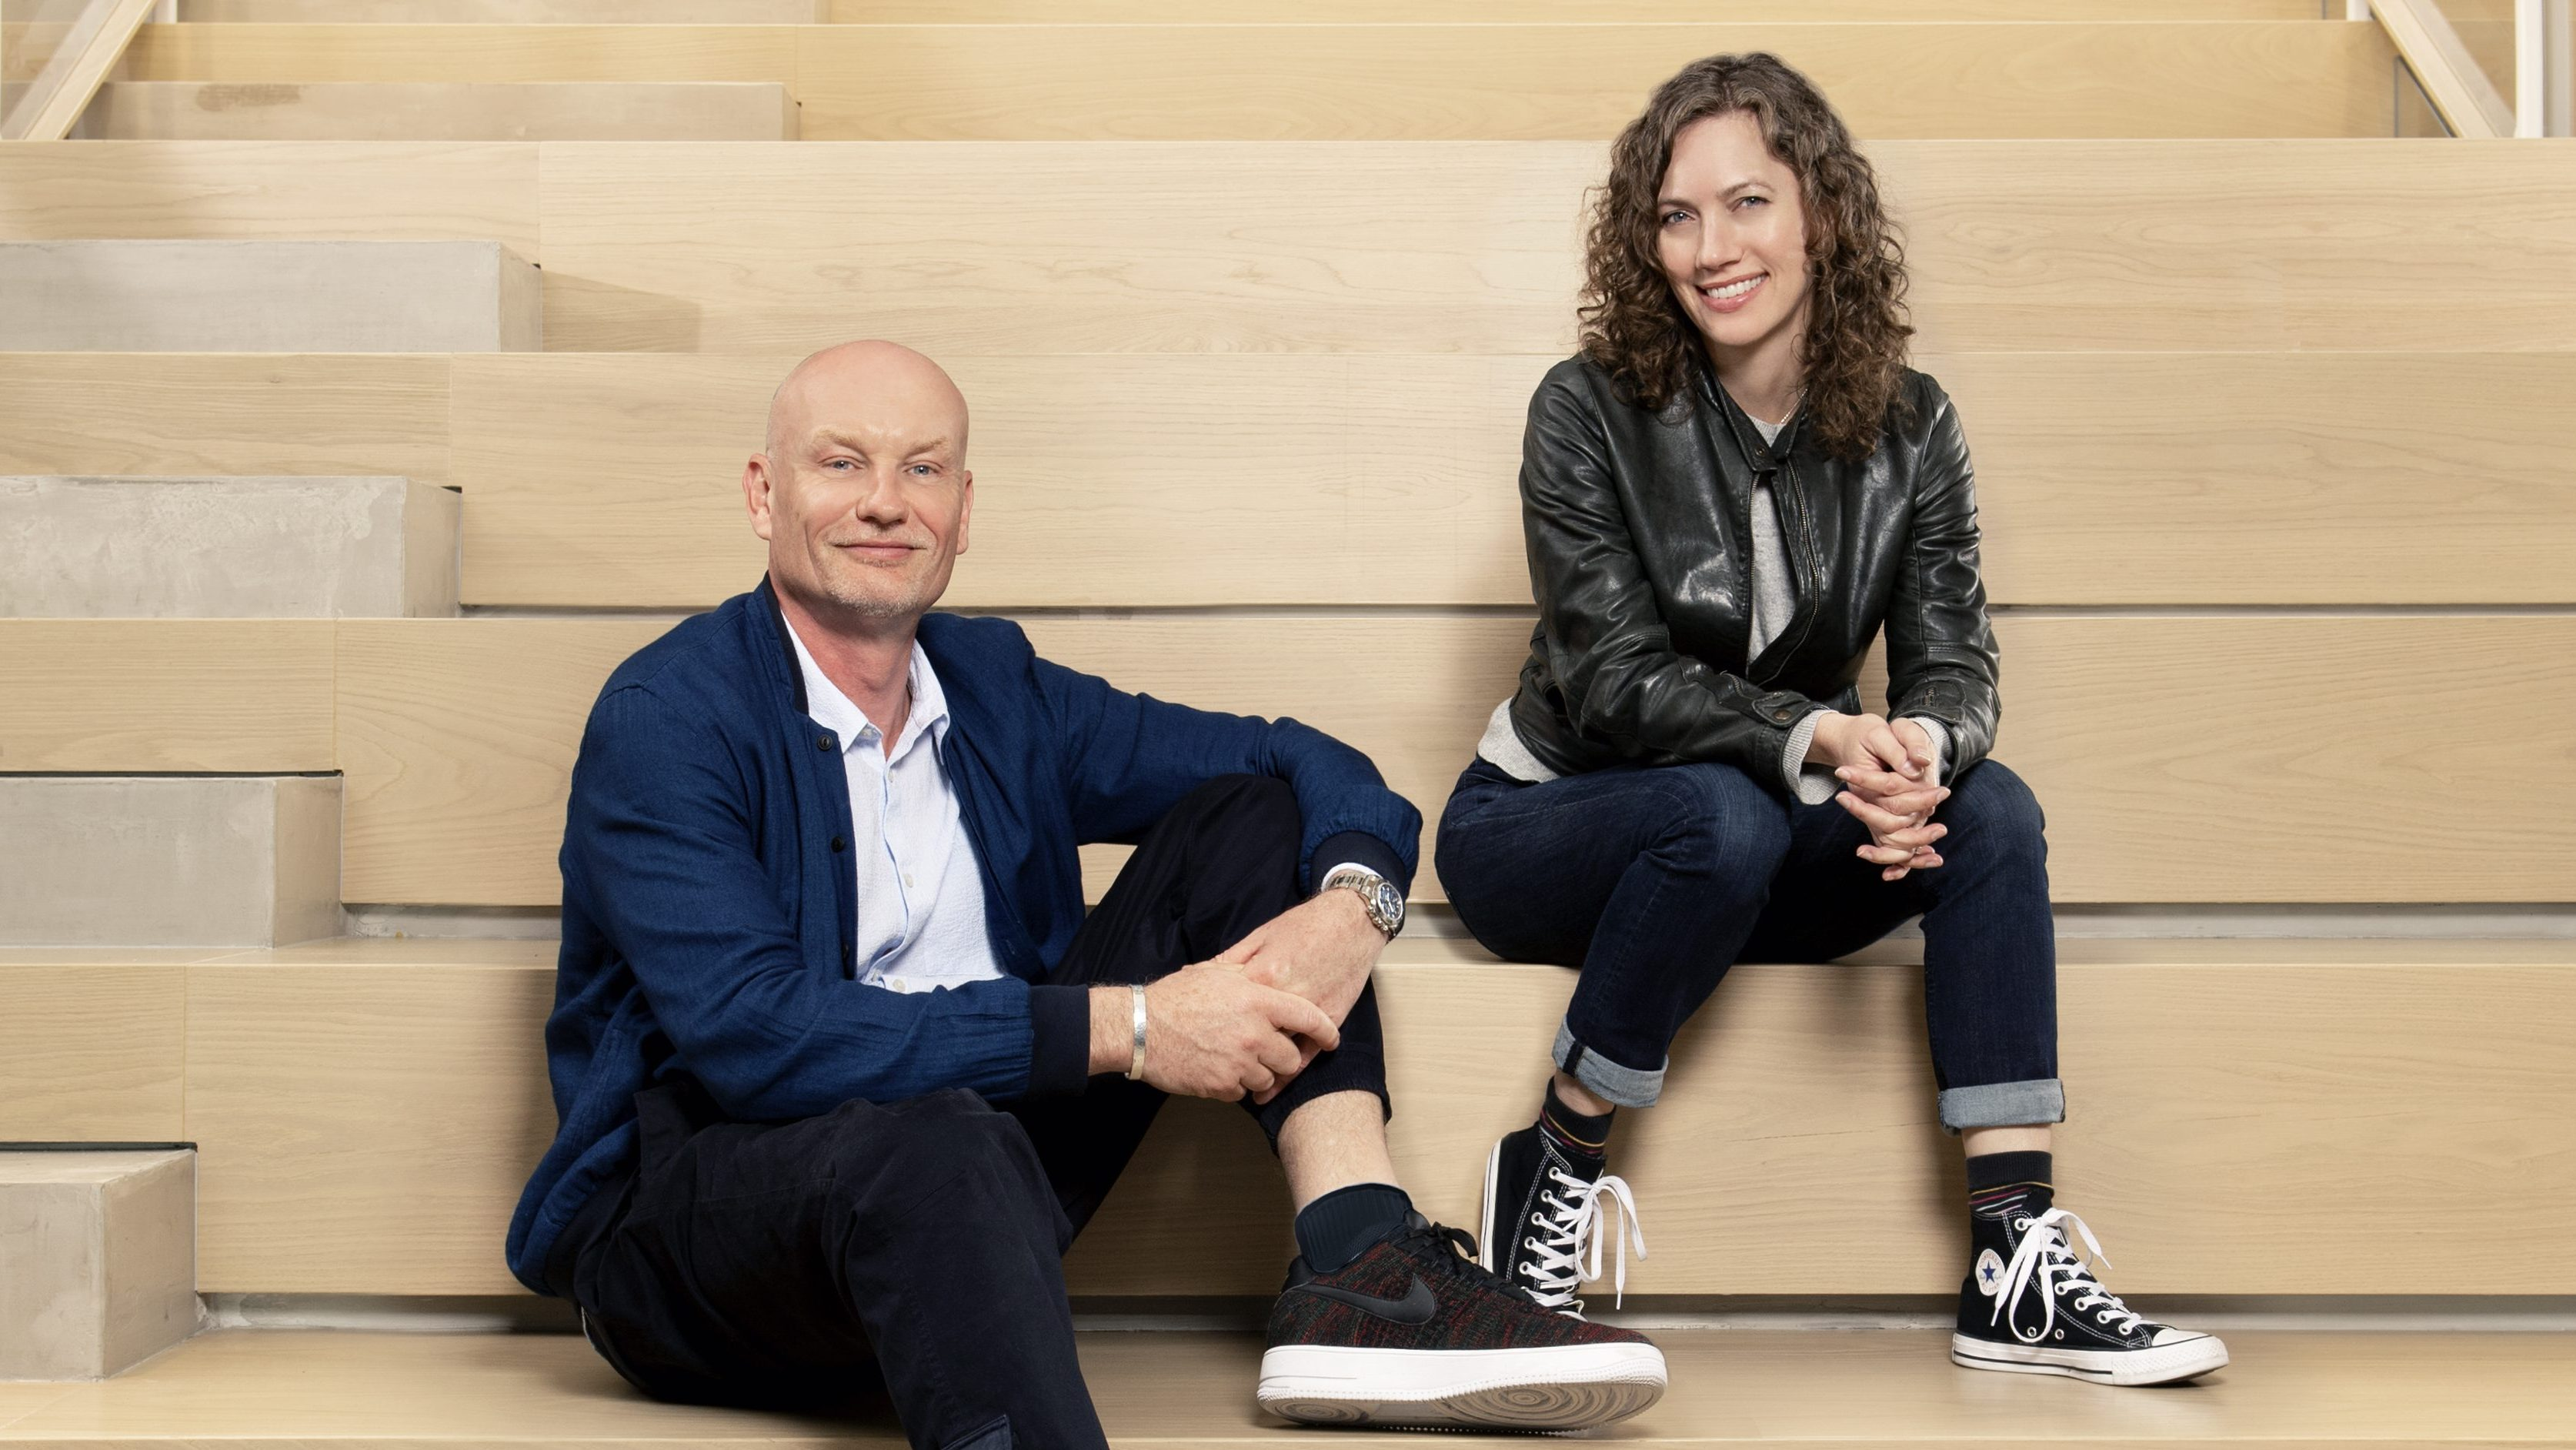 Guy Moot and Carianne Marshall on the New Warner Chappell (EXCLUSIVE)